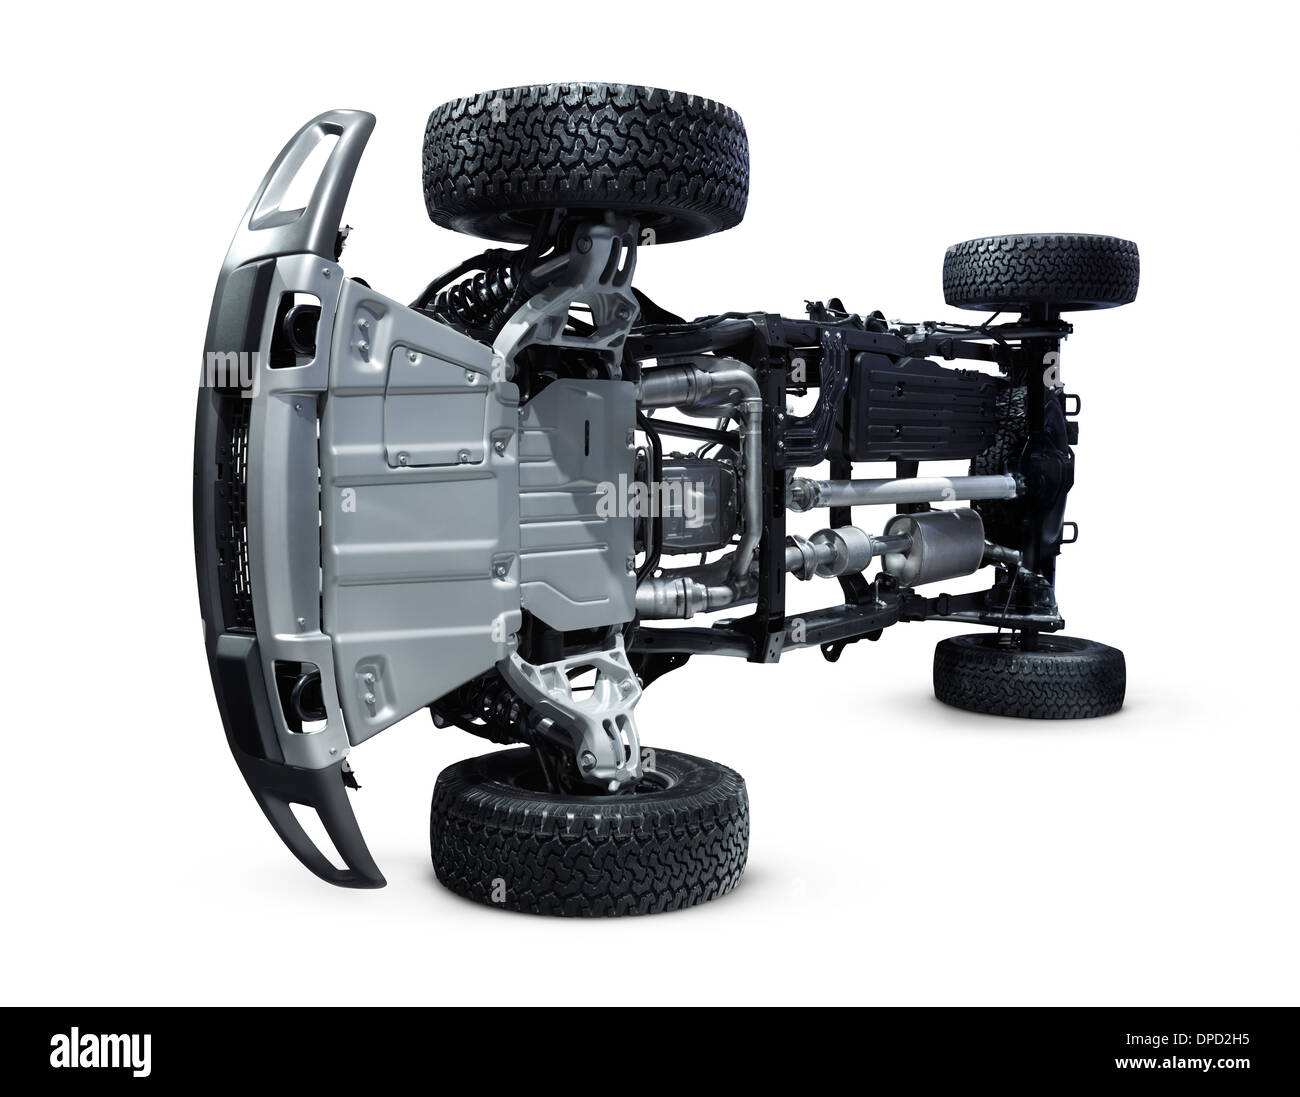 2013 Ford F-150 Raptor pickup truck undercarriage suspension isolated with clipping path on white background - Stock Image